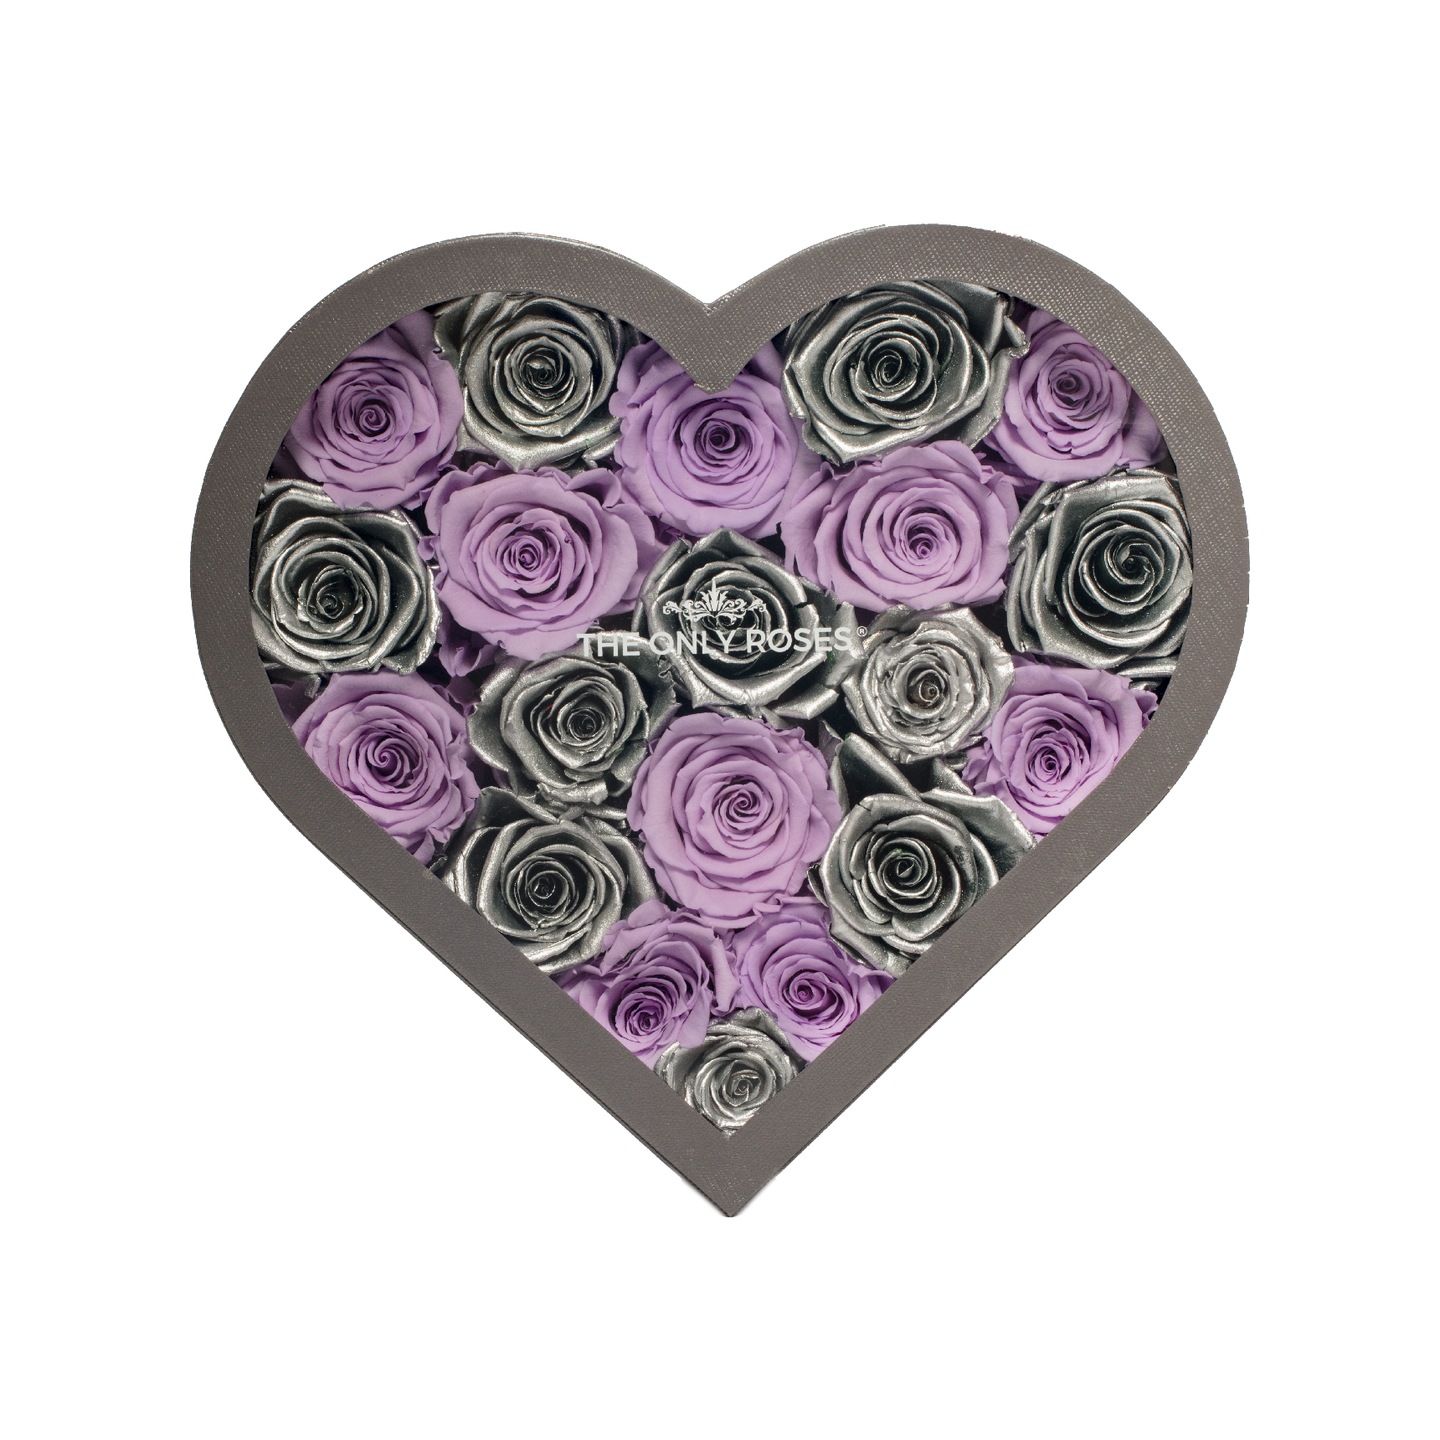 Silver & Light Purple Preserved Roses | Medium Heart Classic Grey Box - The Only Roses